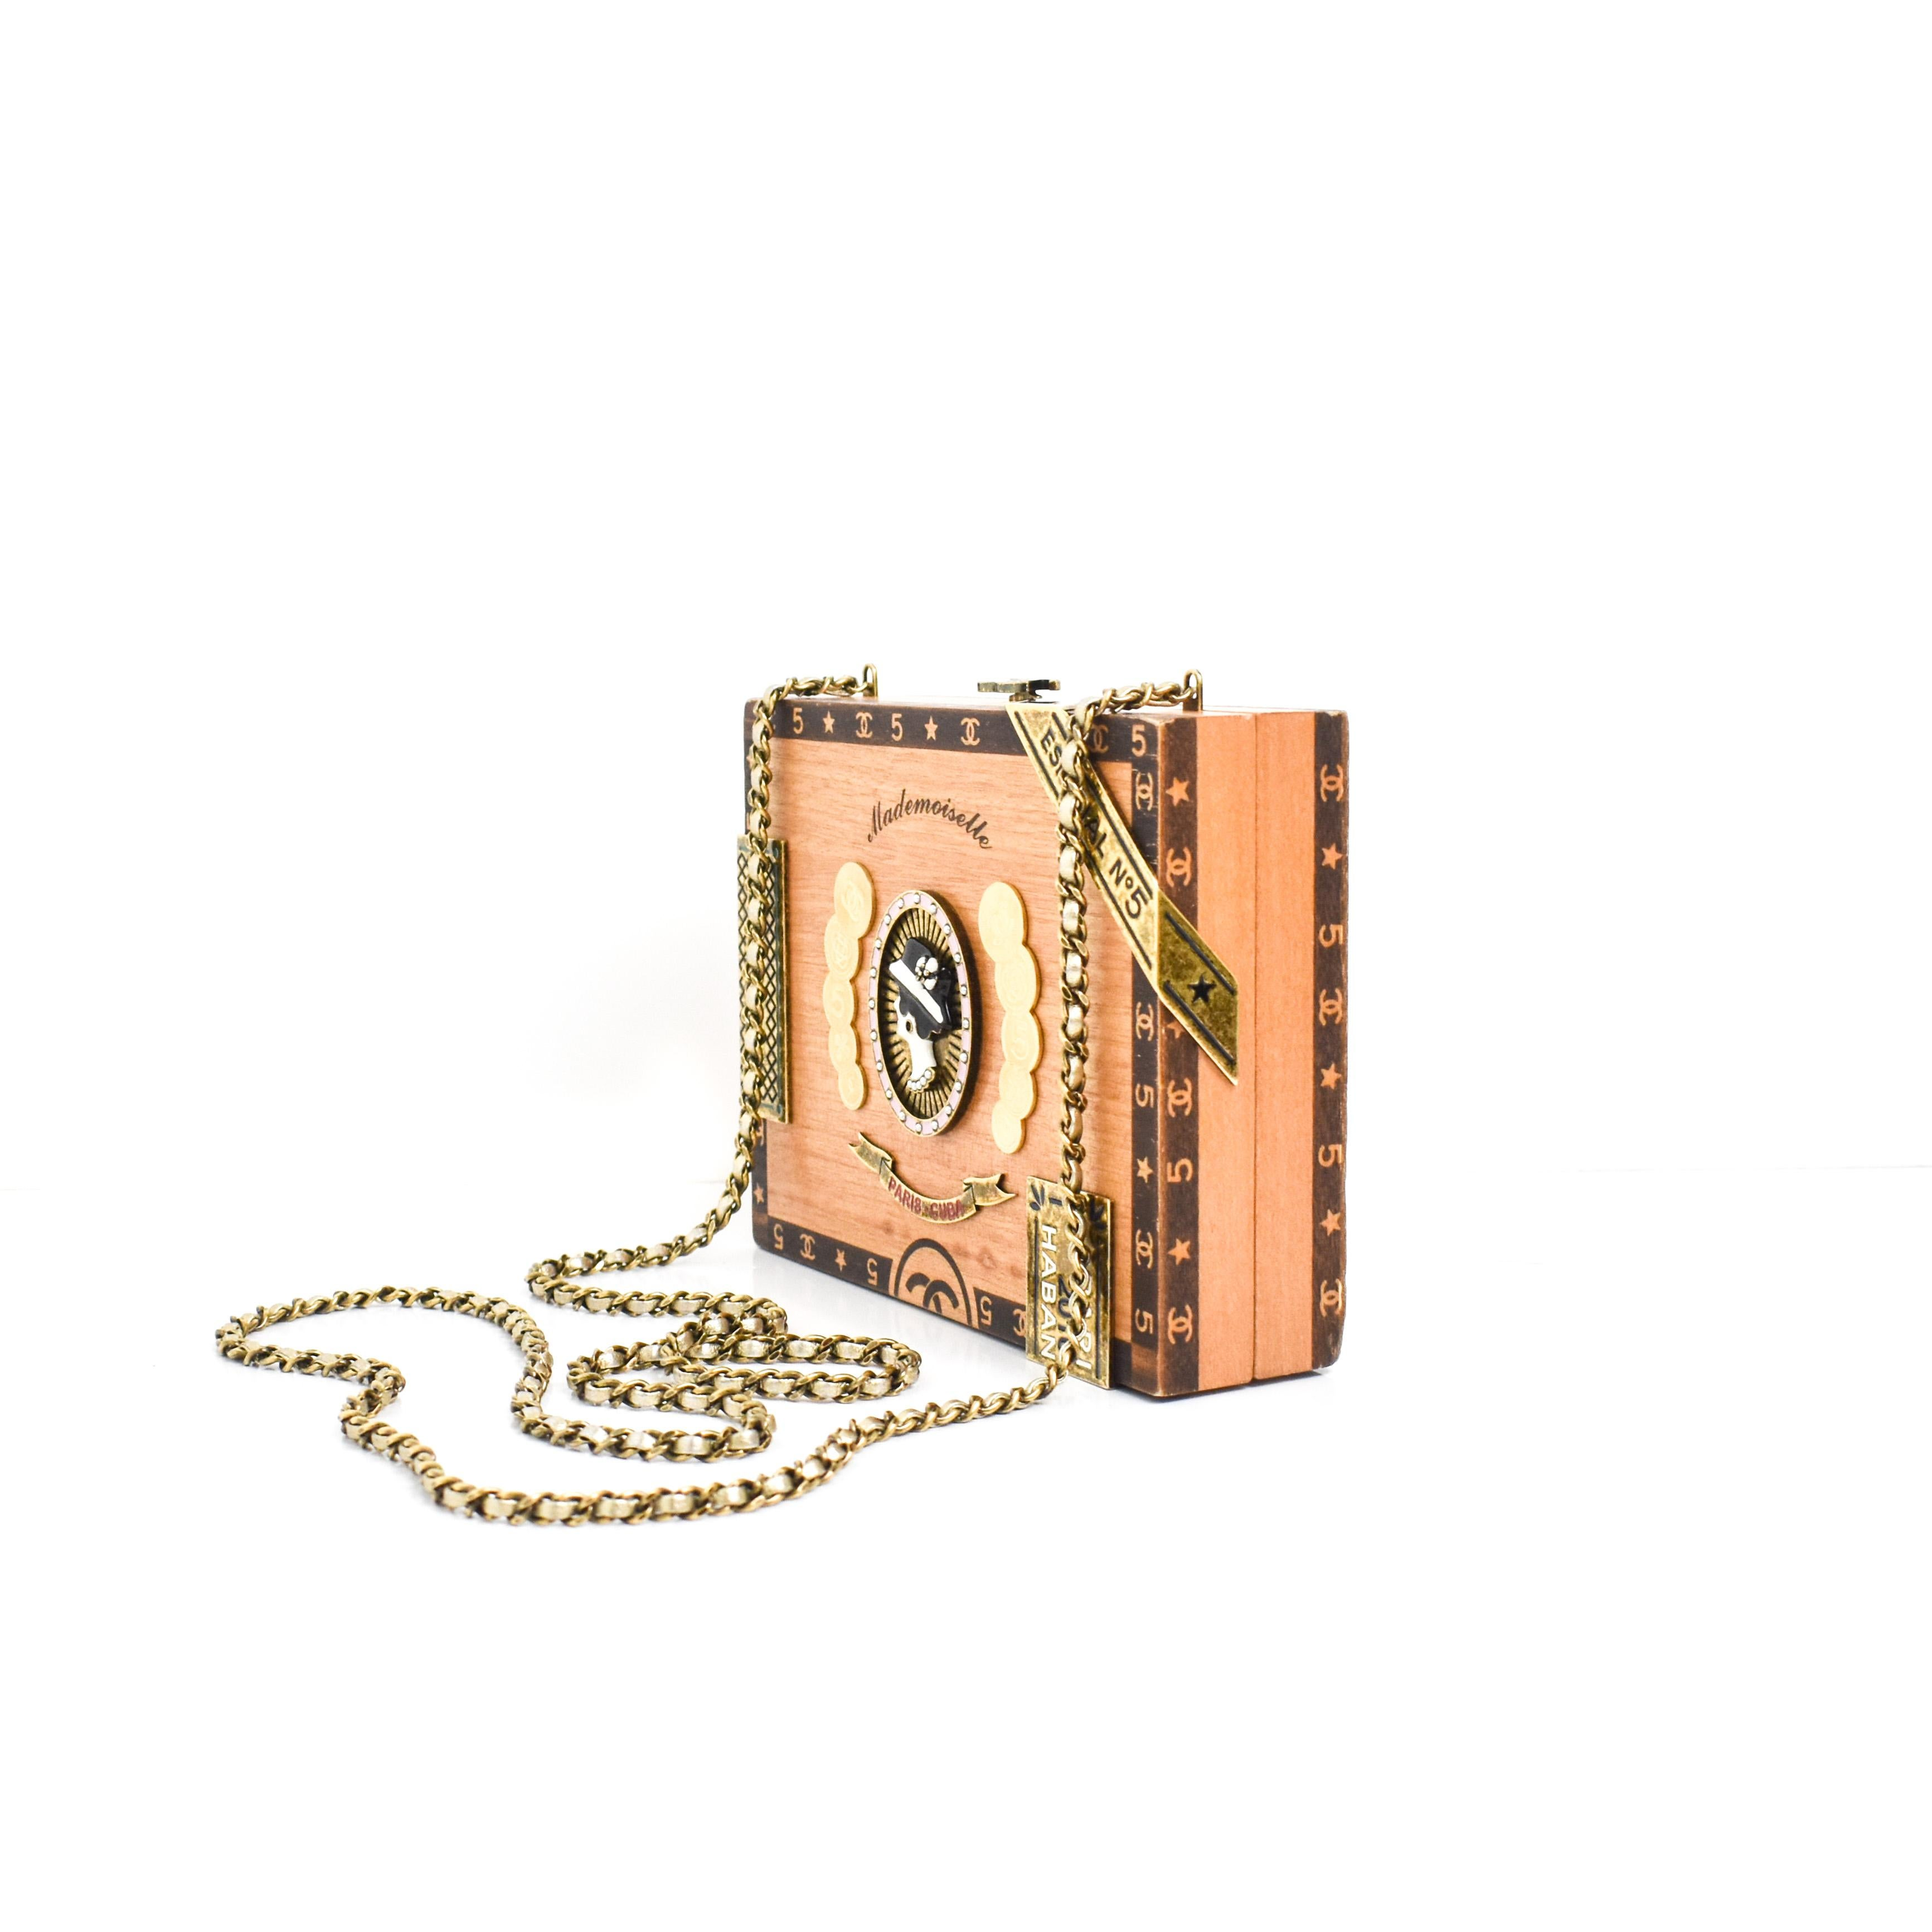 526e8a359b95a2 CHANEL 2017 HAVANA by NIGHT CIGAR BOX BAG. For Sale at 1stdibs